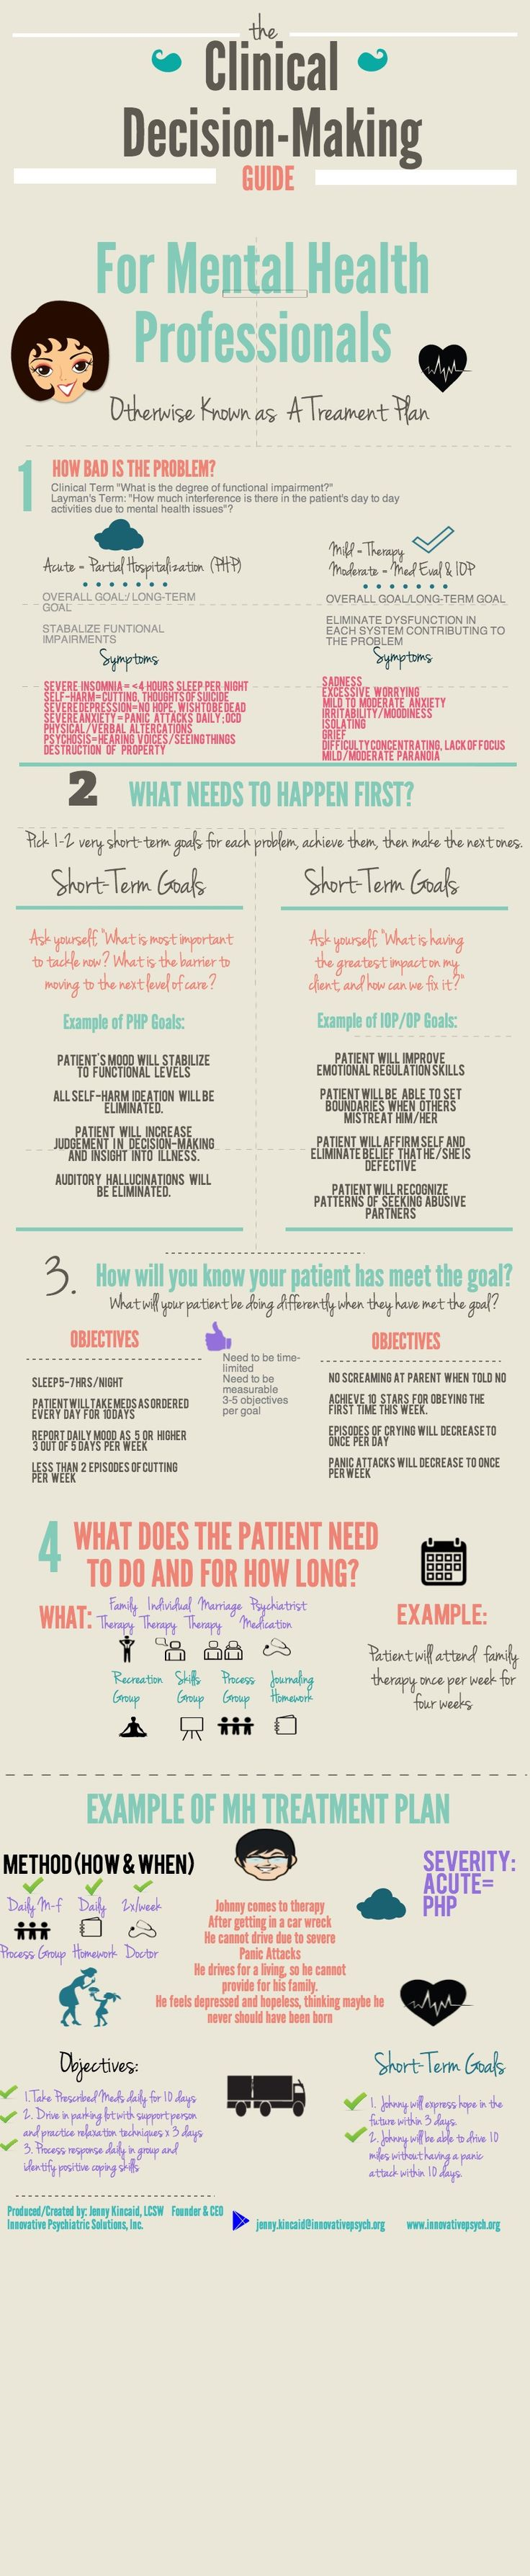 Infrographic on how to make a MH treatment plan